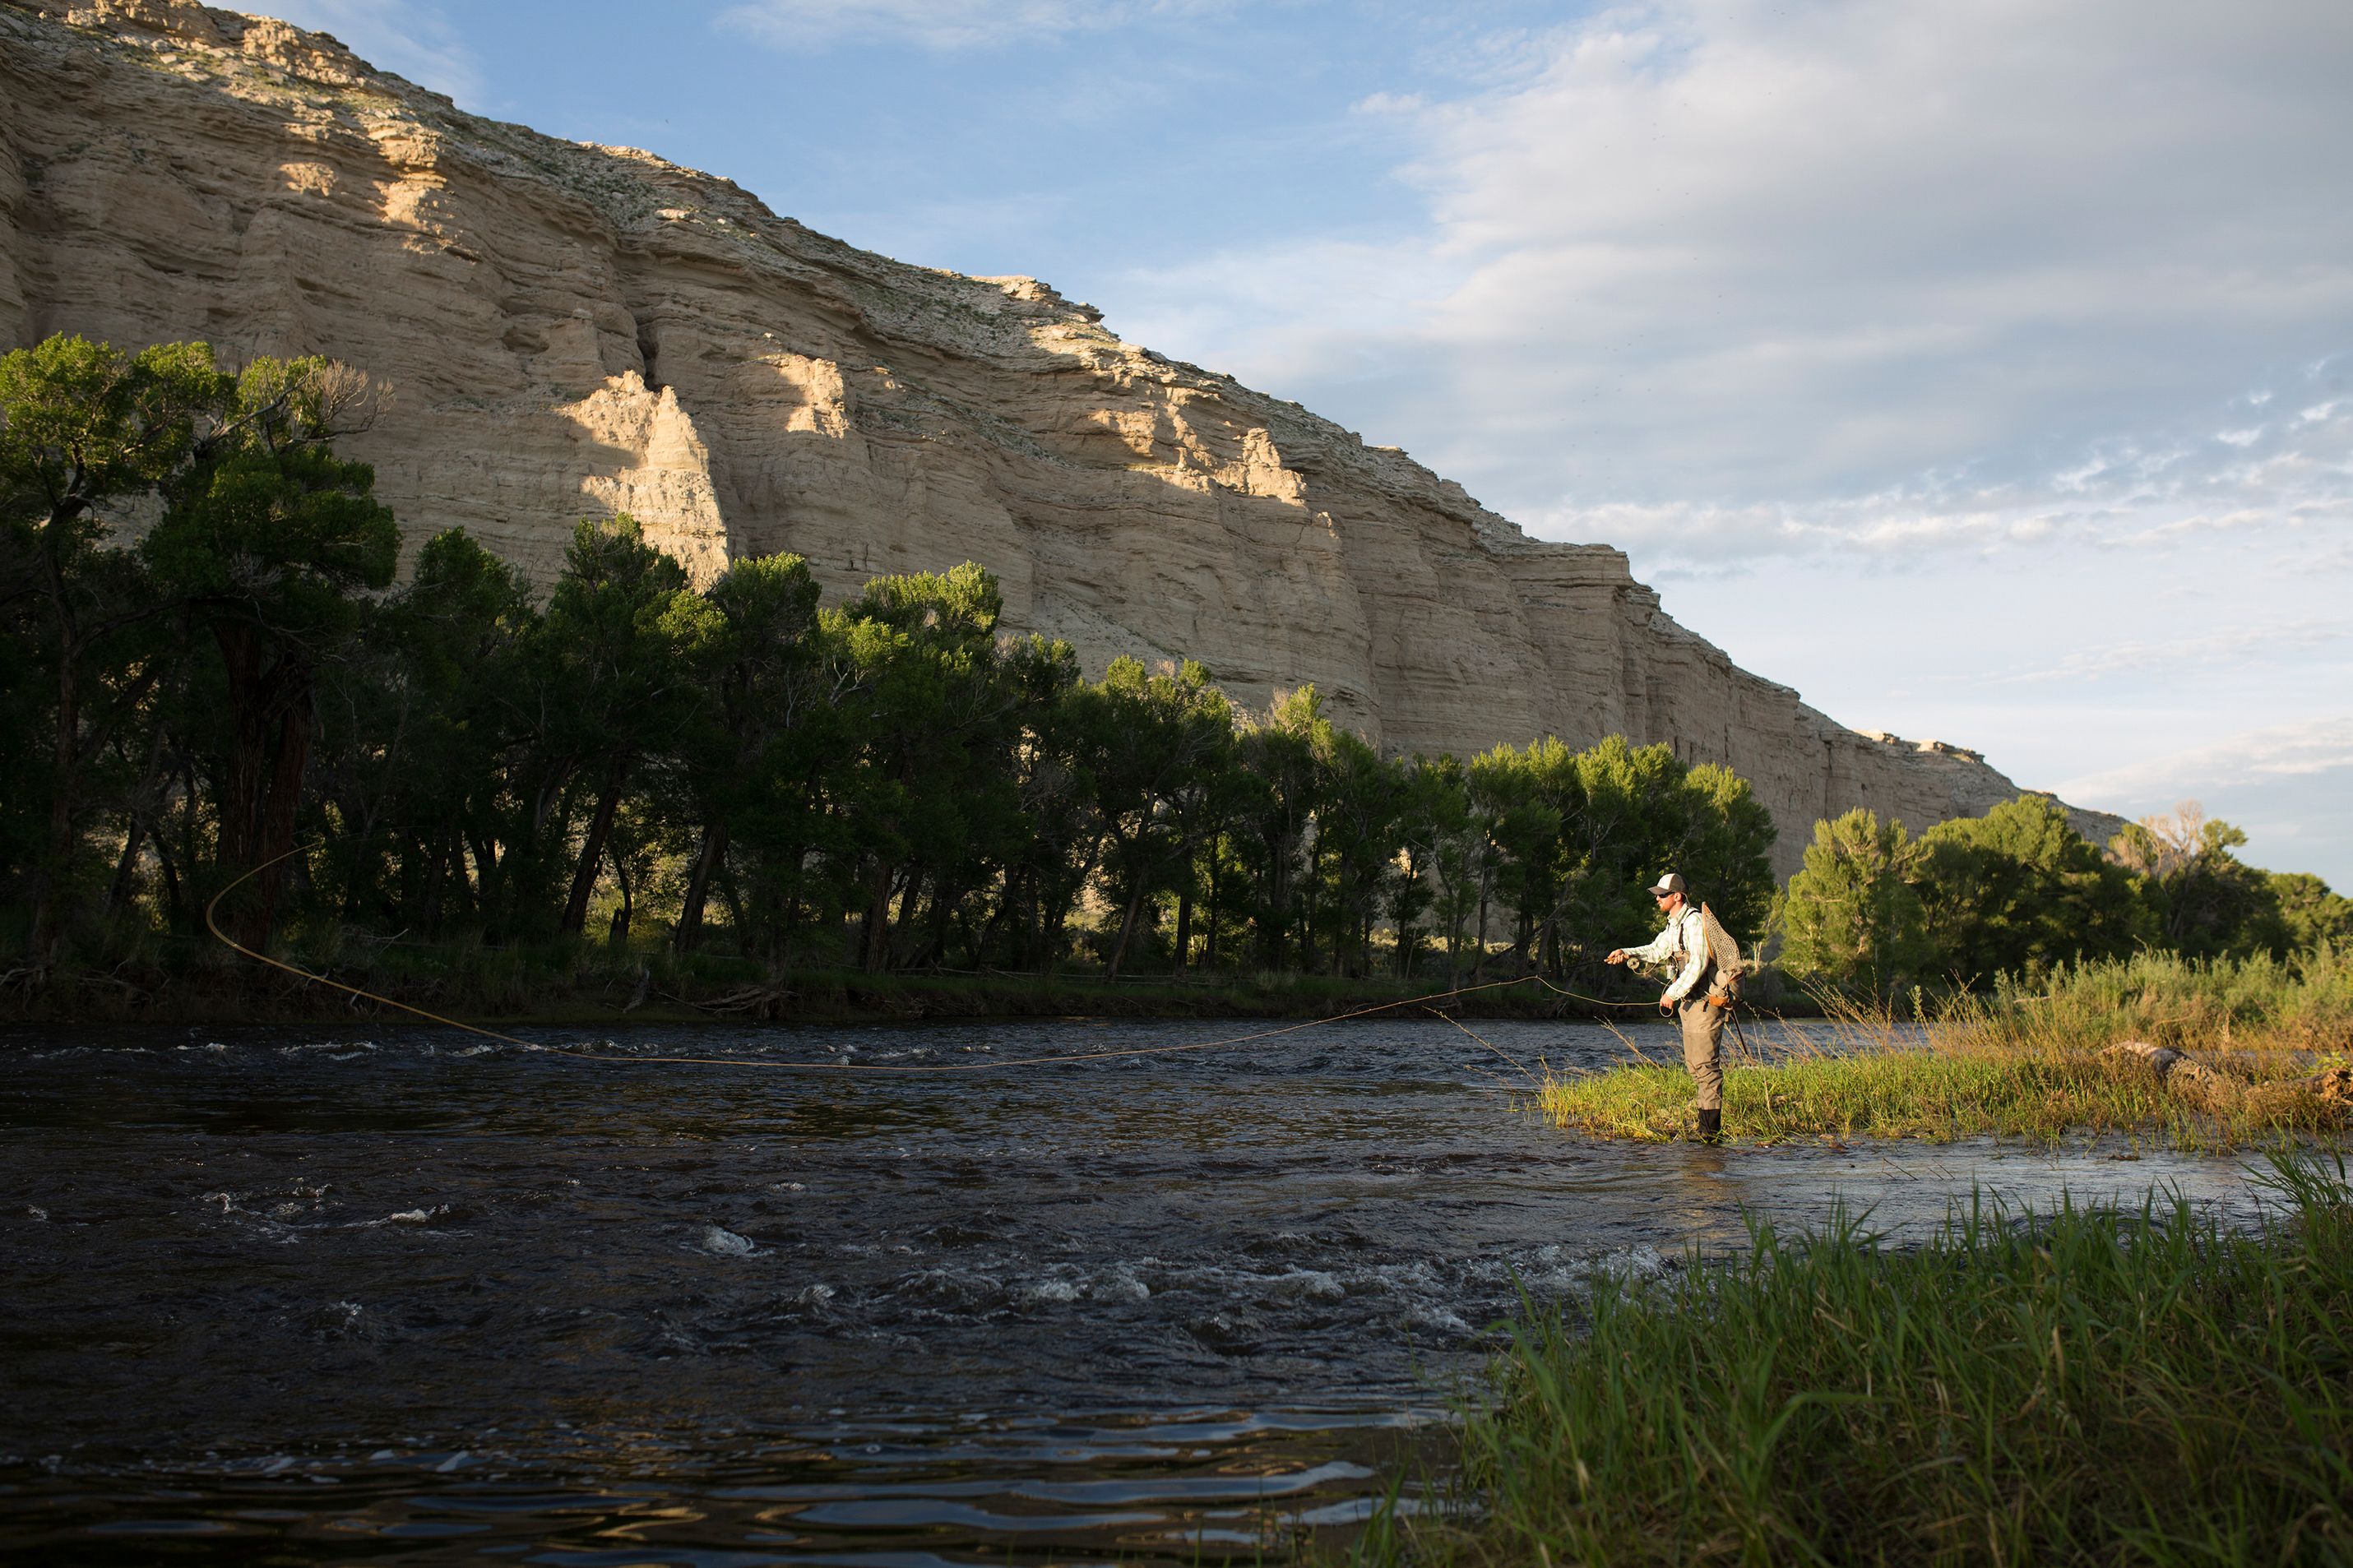 A fisherman using the premium Orvis and Beretta gear to perform the best catch at French Creek Sportsmen's Club